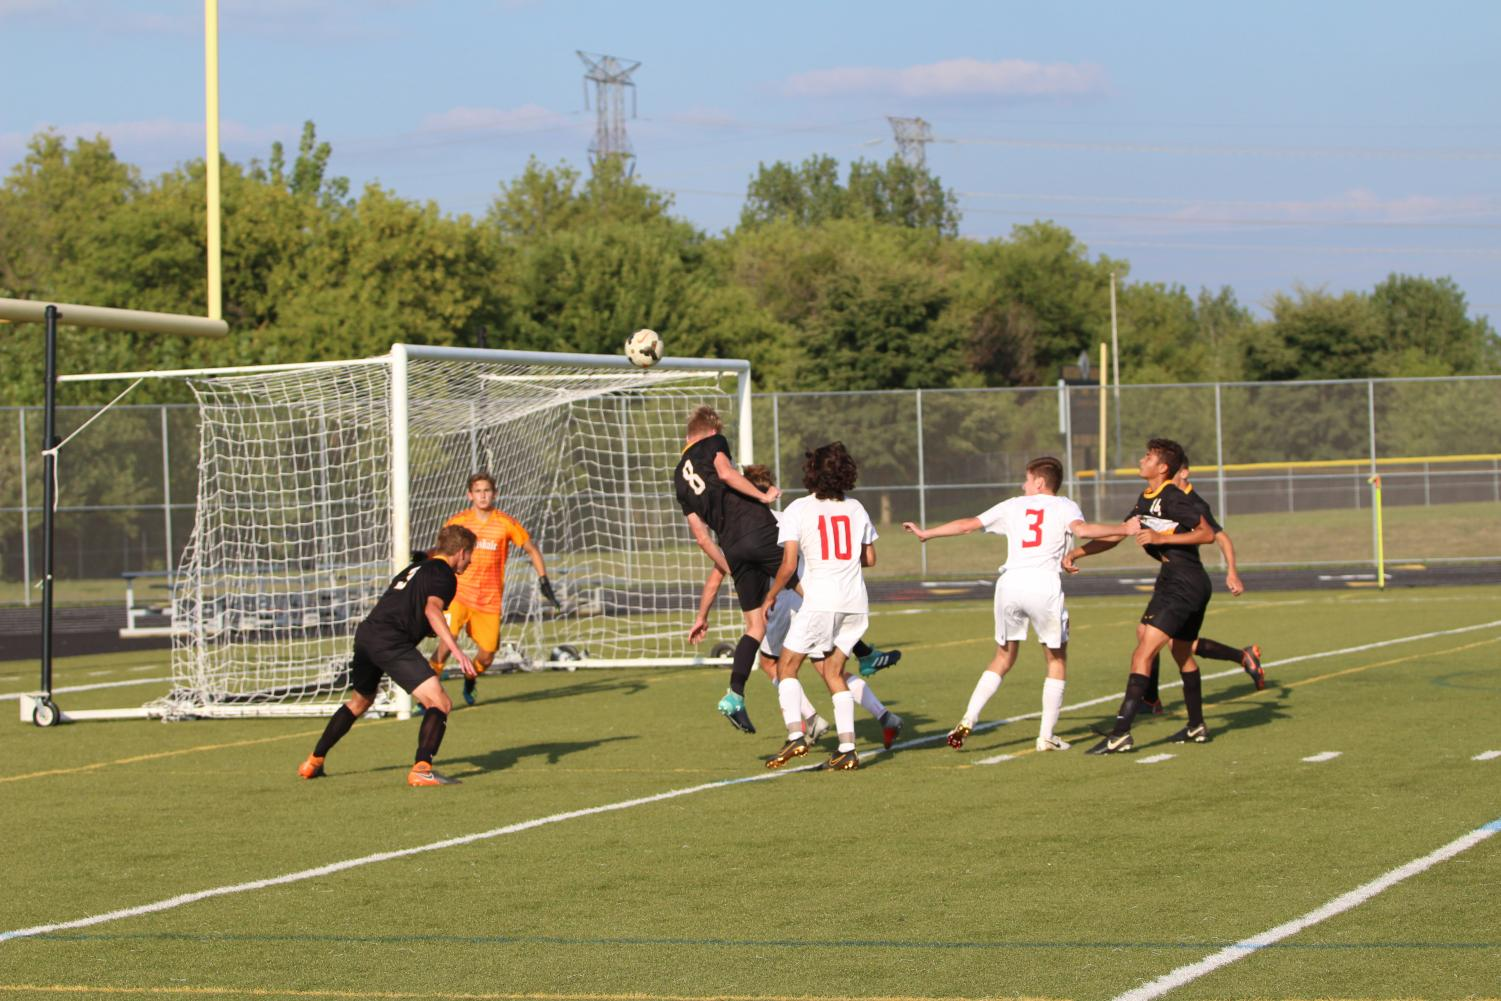 Boys' Soccer won 2-1 last night against Hinsdale Central.